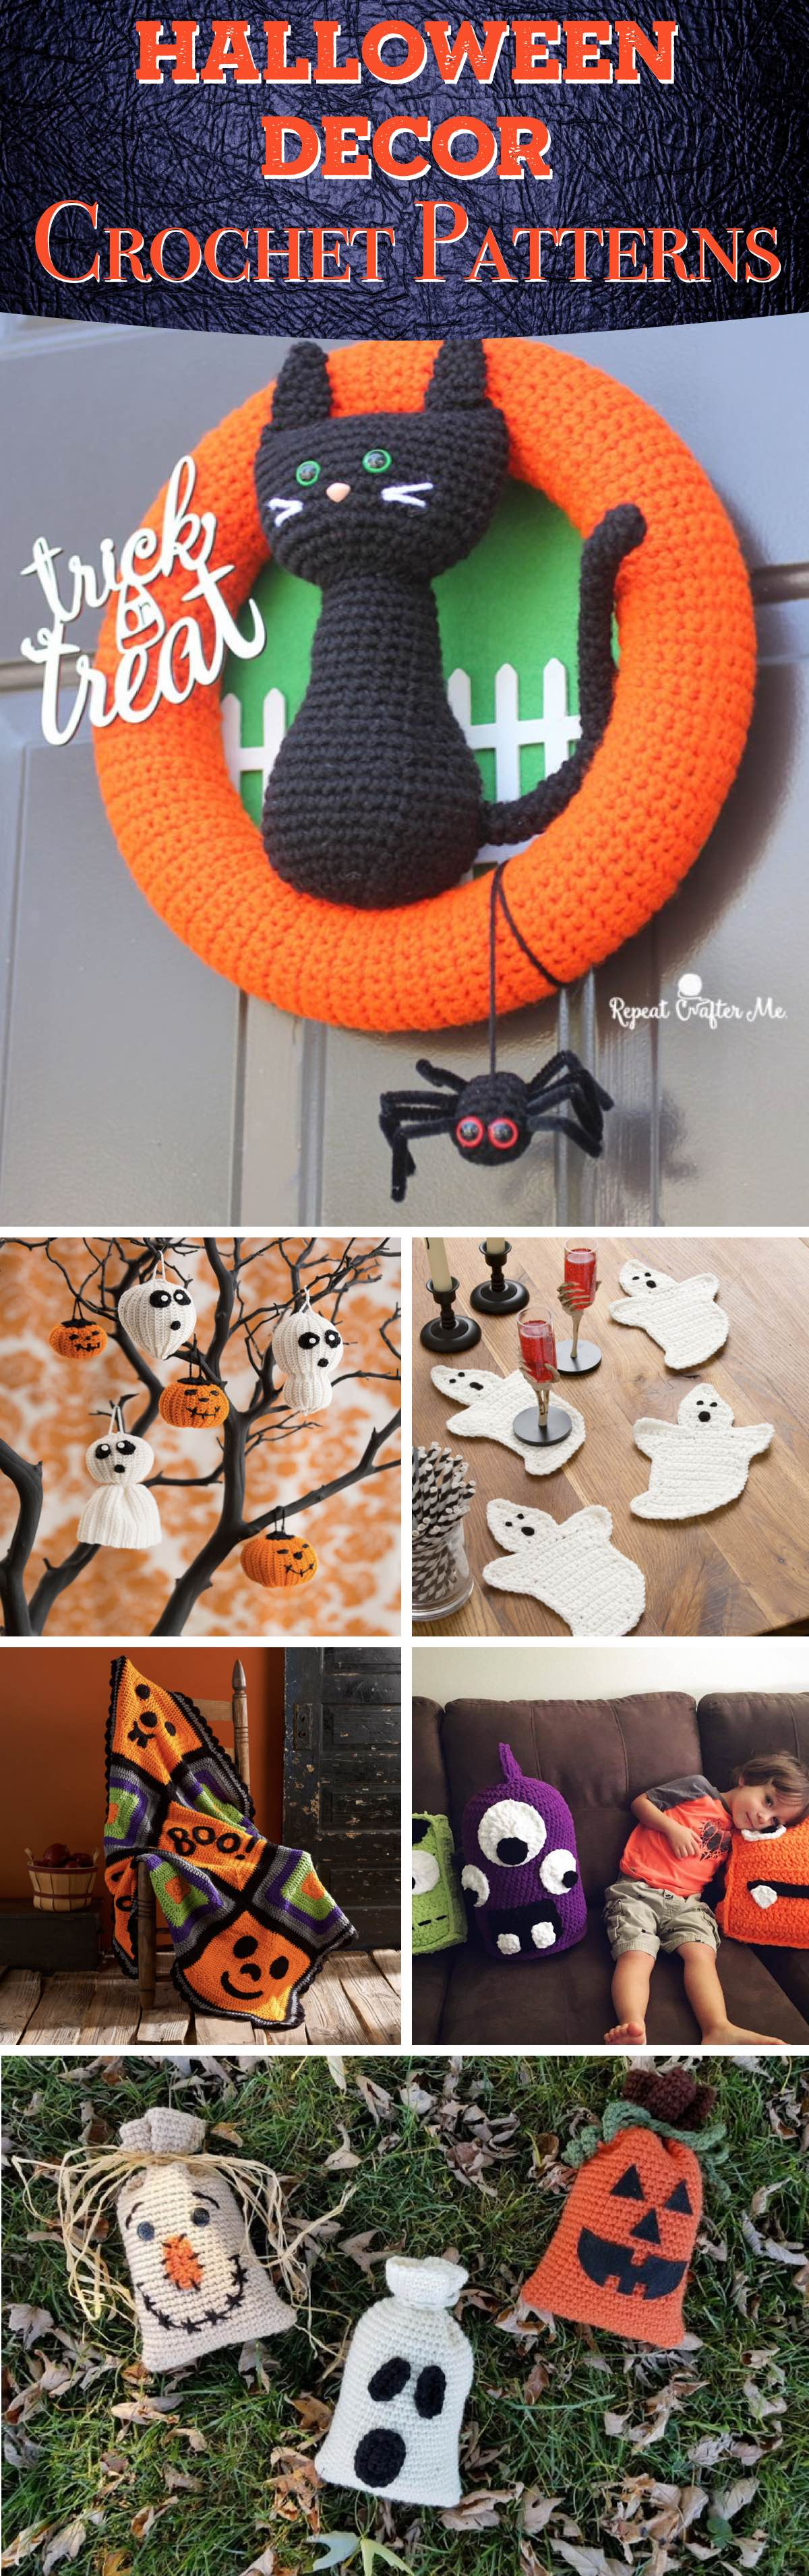 20 Halloween Decor Crochet Patterns Ranging from Pumpkins to Witch Hats!